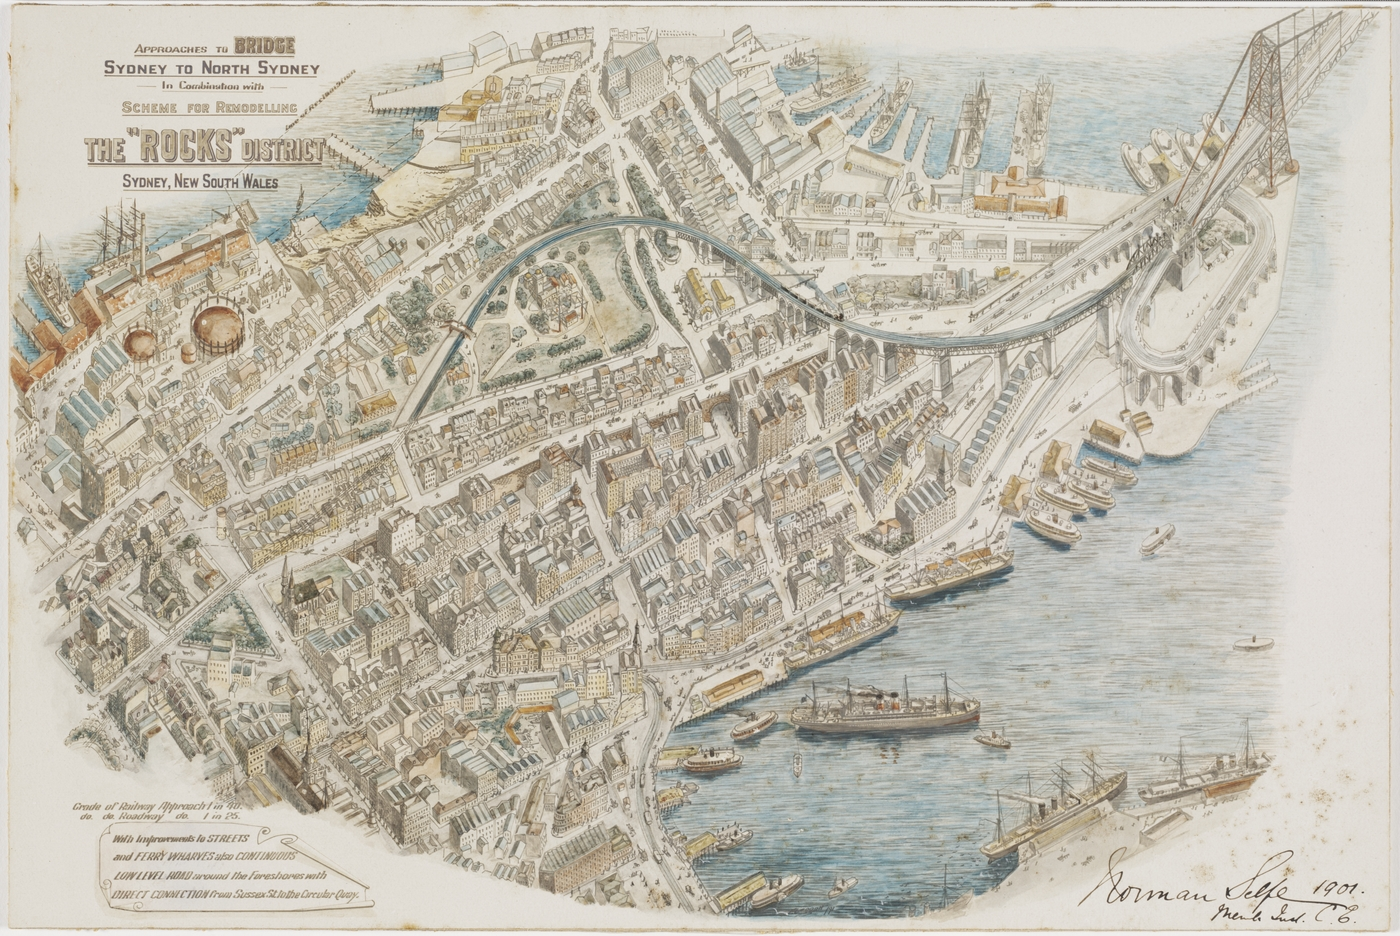 "Approaches to bridge Sydney to North Sydney in combination with scheme for remodelling the ""Rocks"" district / ariel view of remodelling proposal 1891"